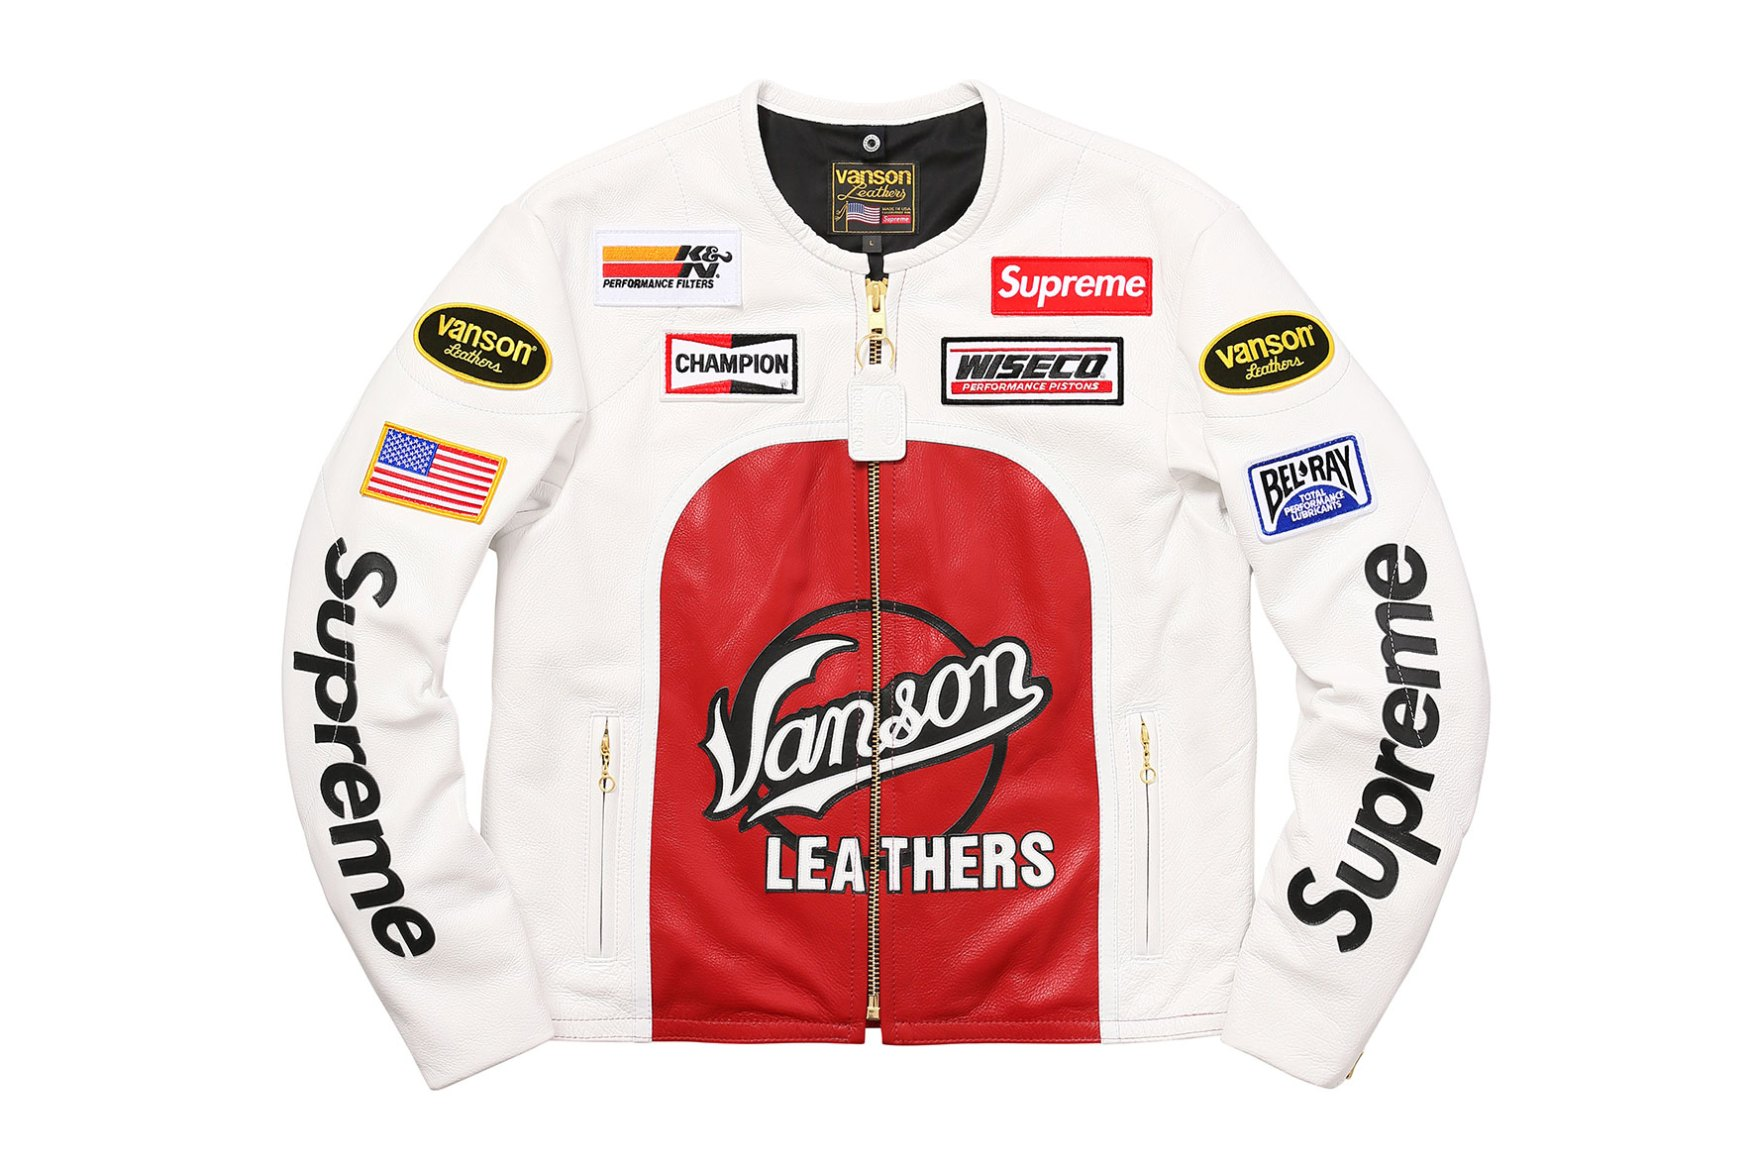 supreme 2017 vanson leathers jacket.jpg